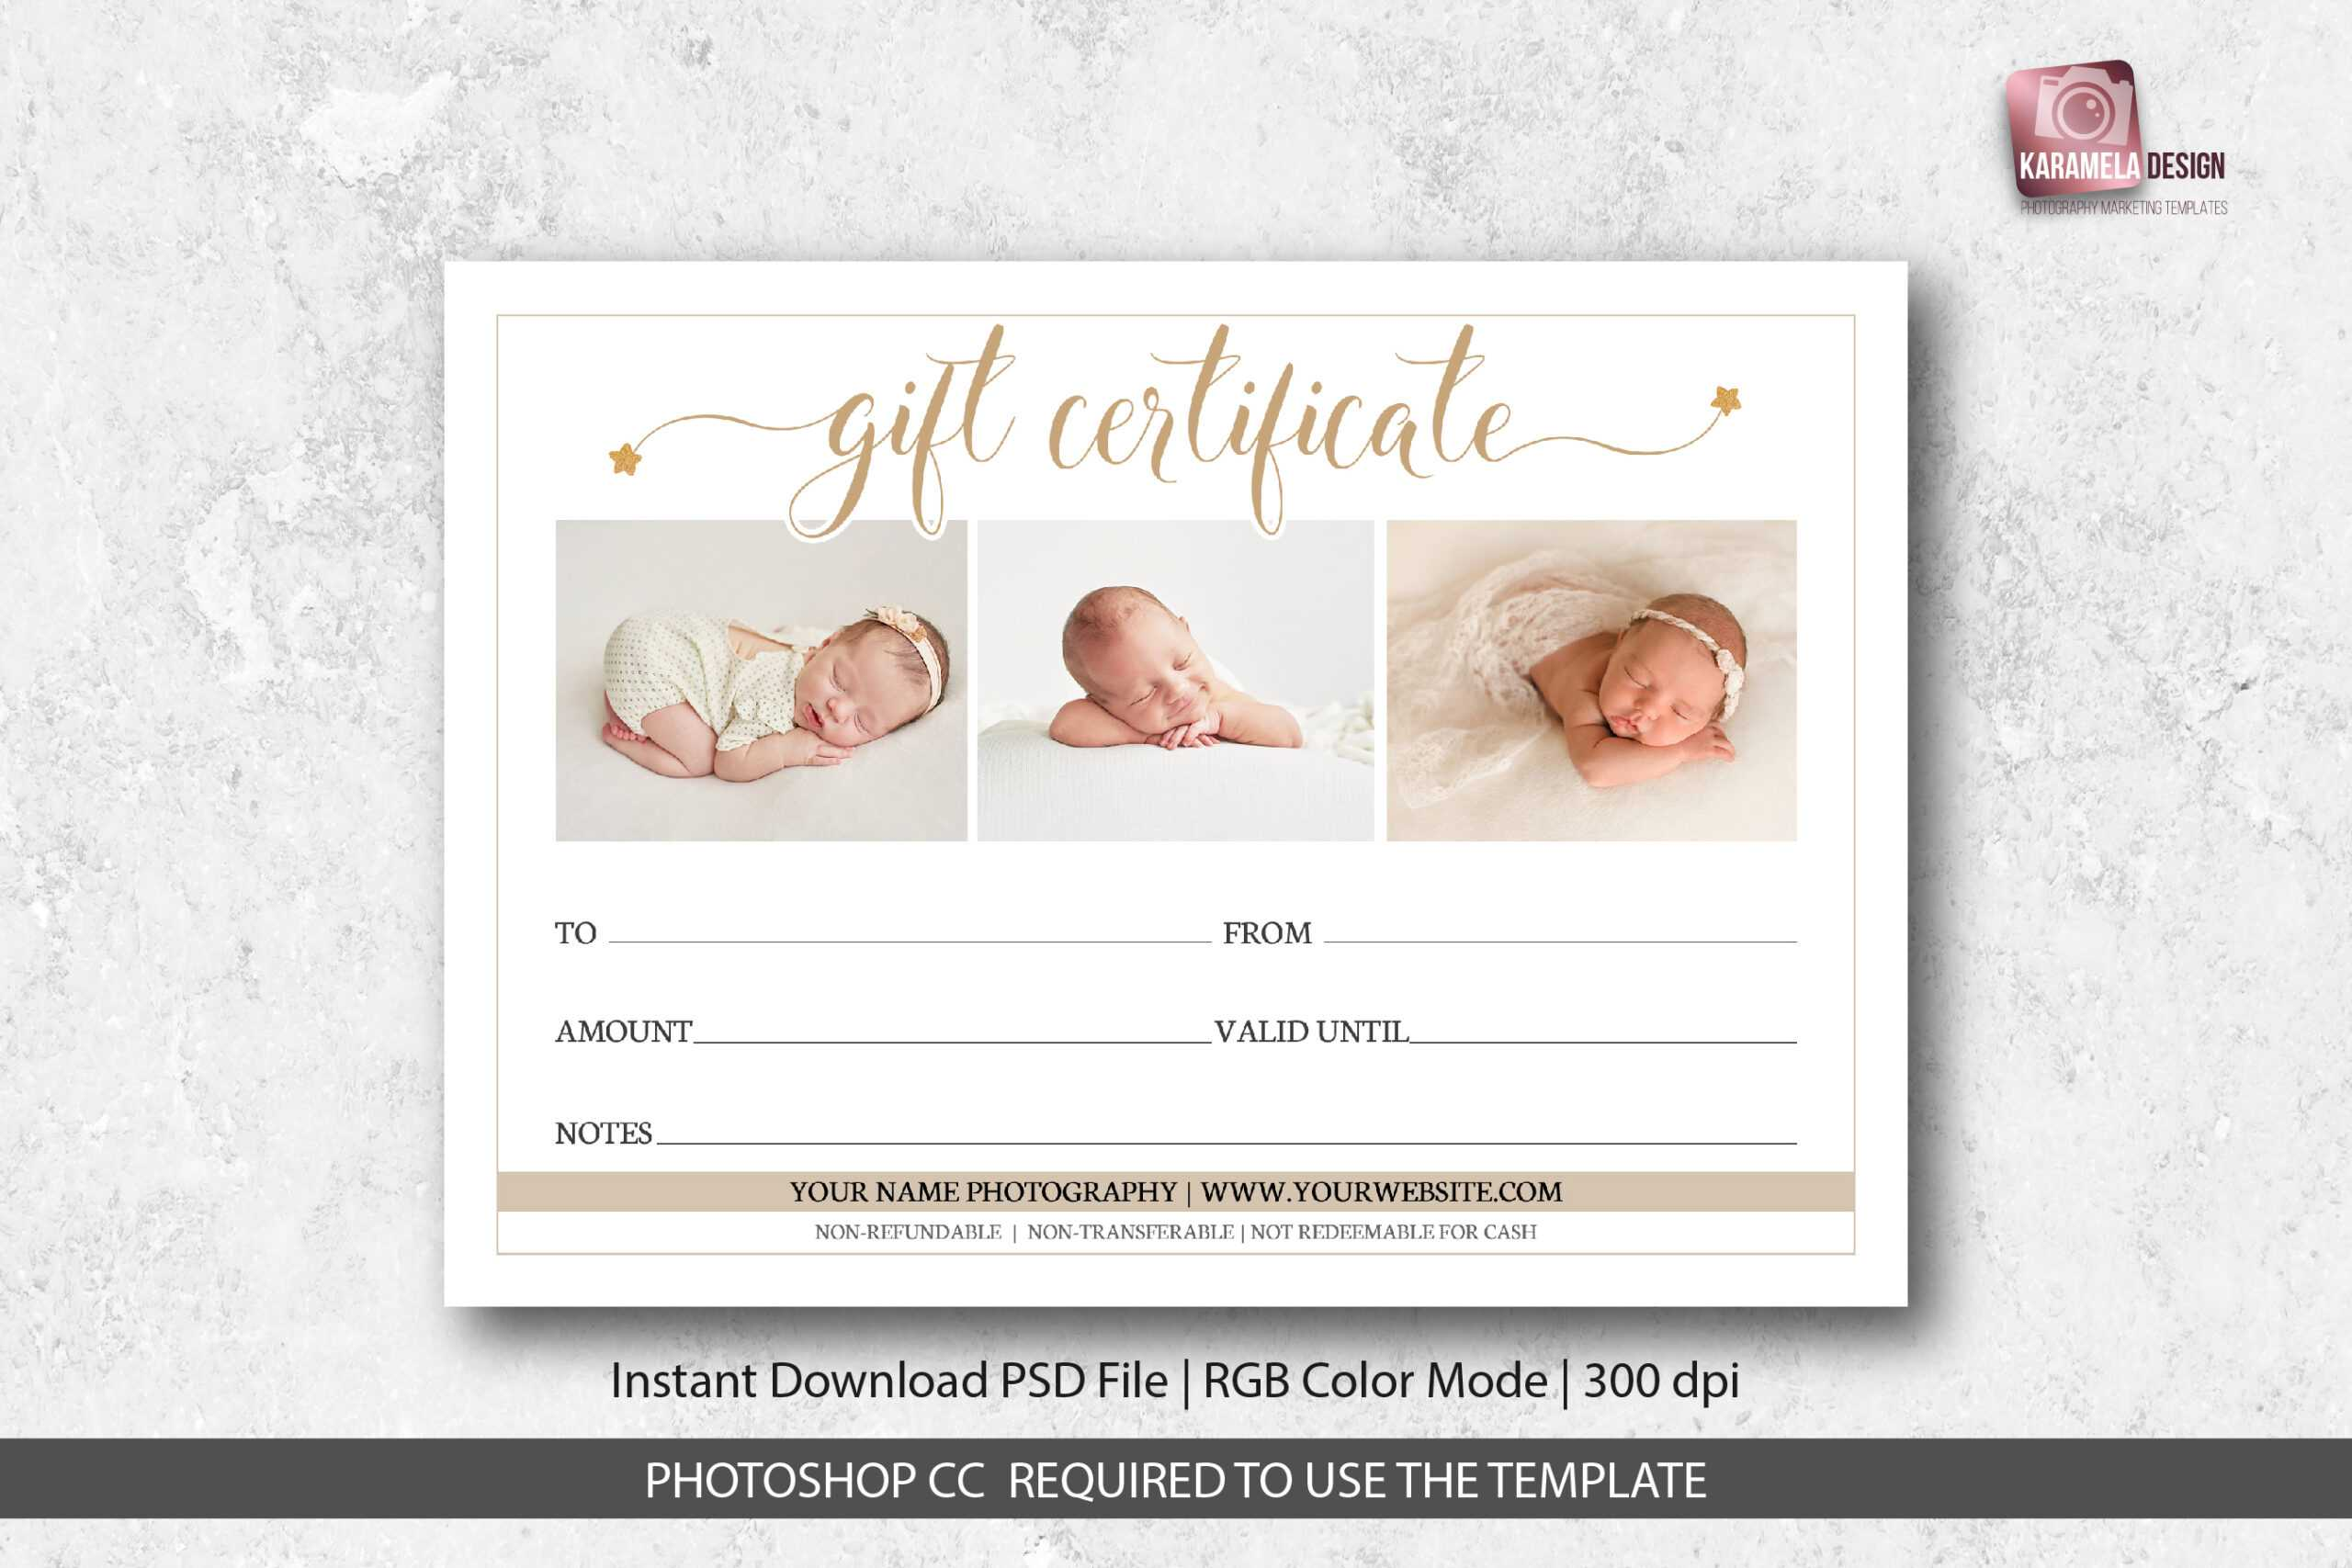 Photography Studio Gift Certificate Template Throughout Photoshoot Gift Certificate Template